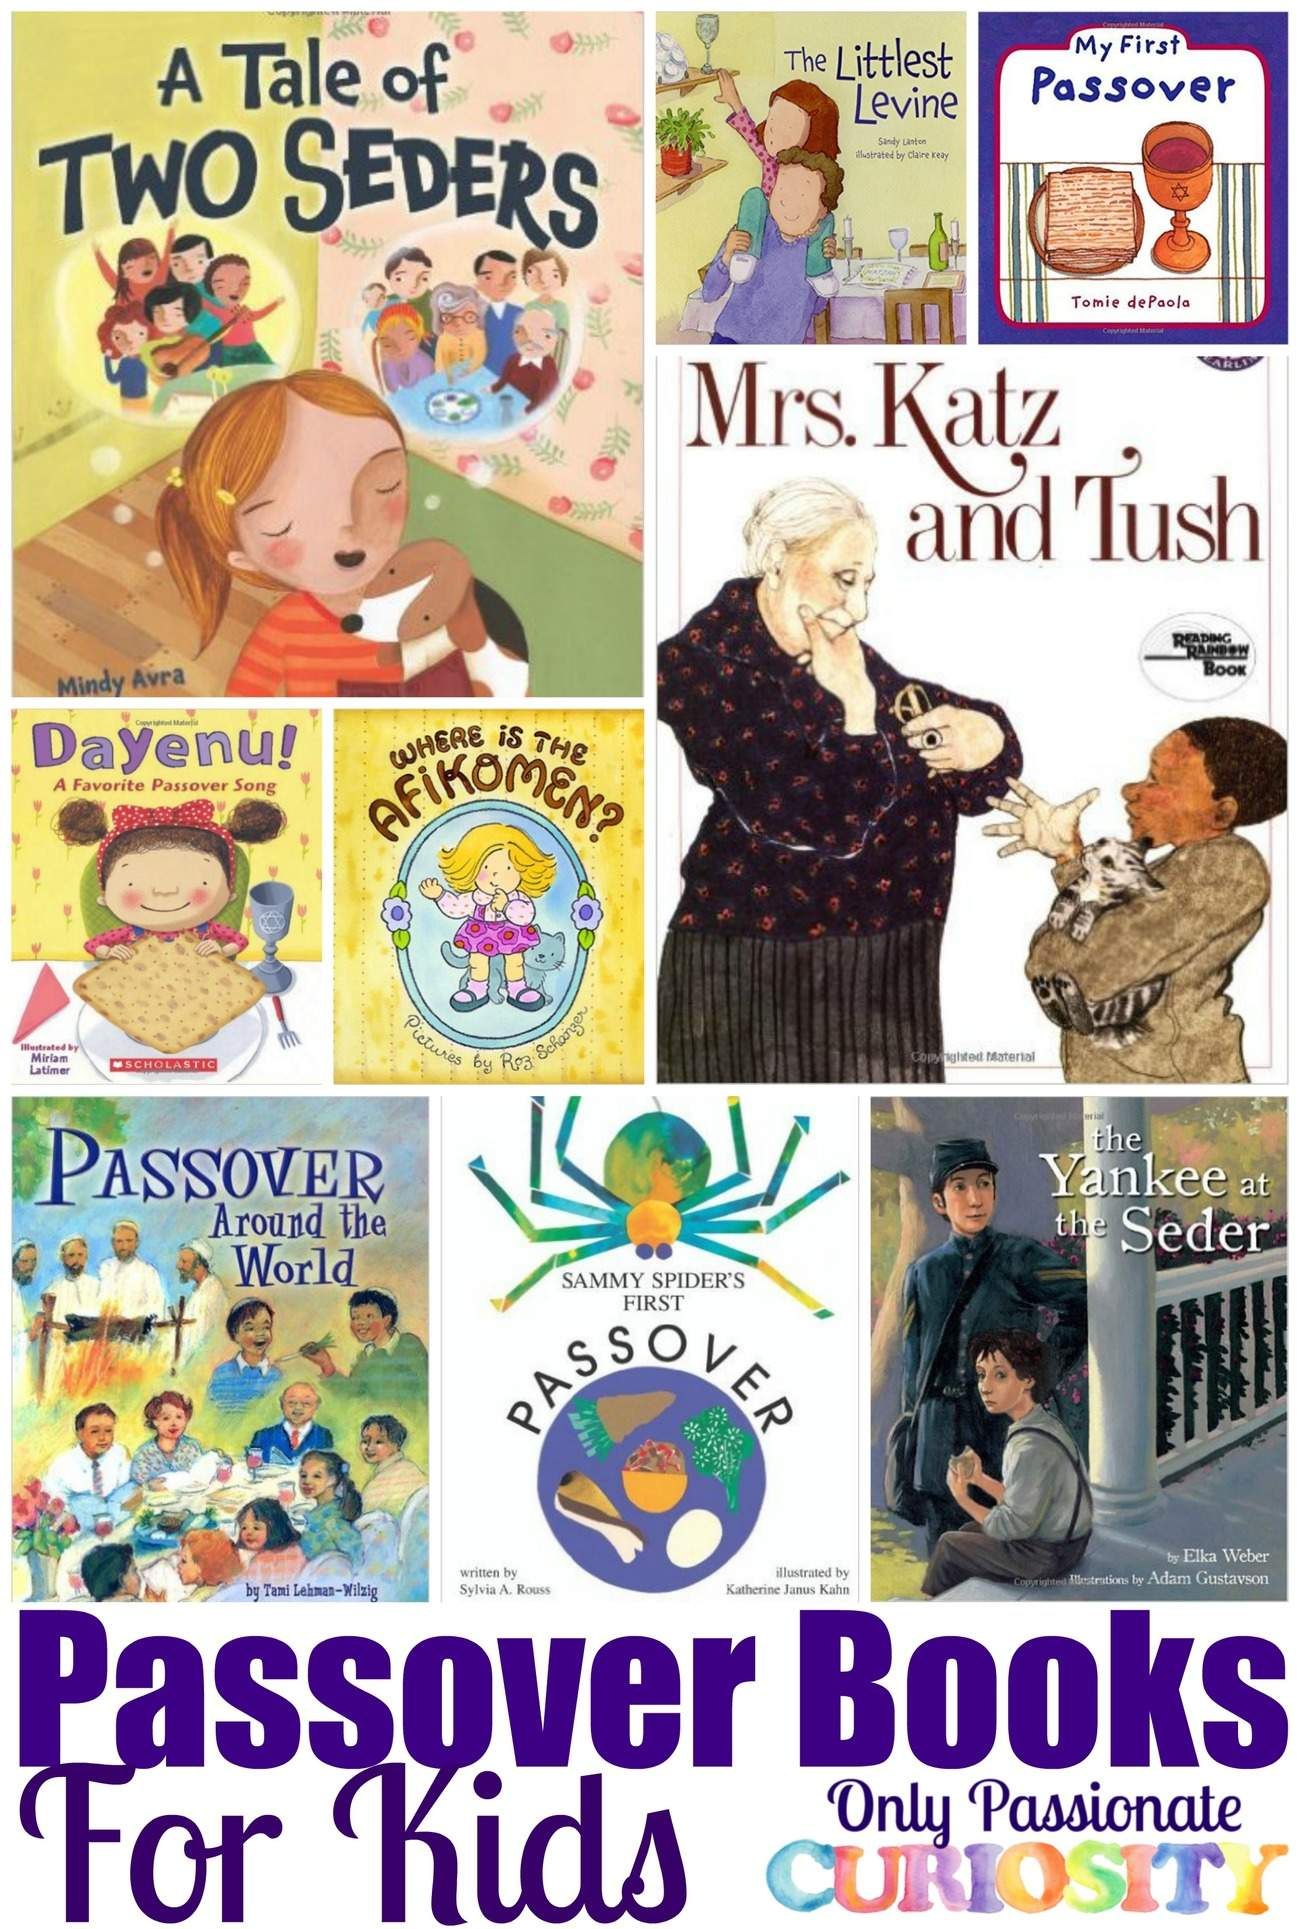 Learning about Passover with Your Children